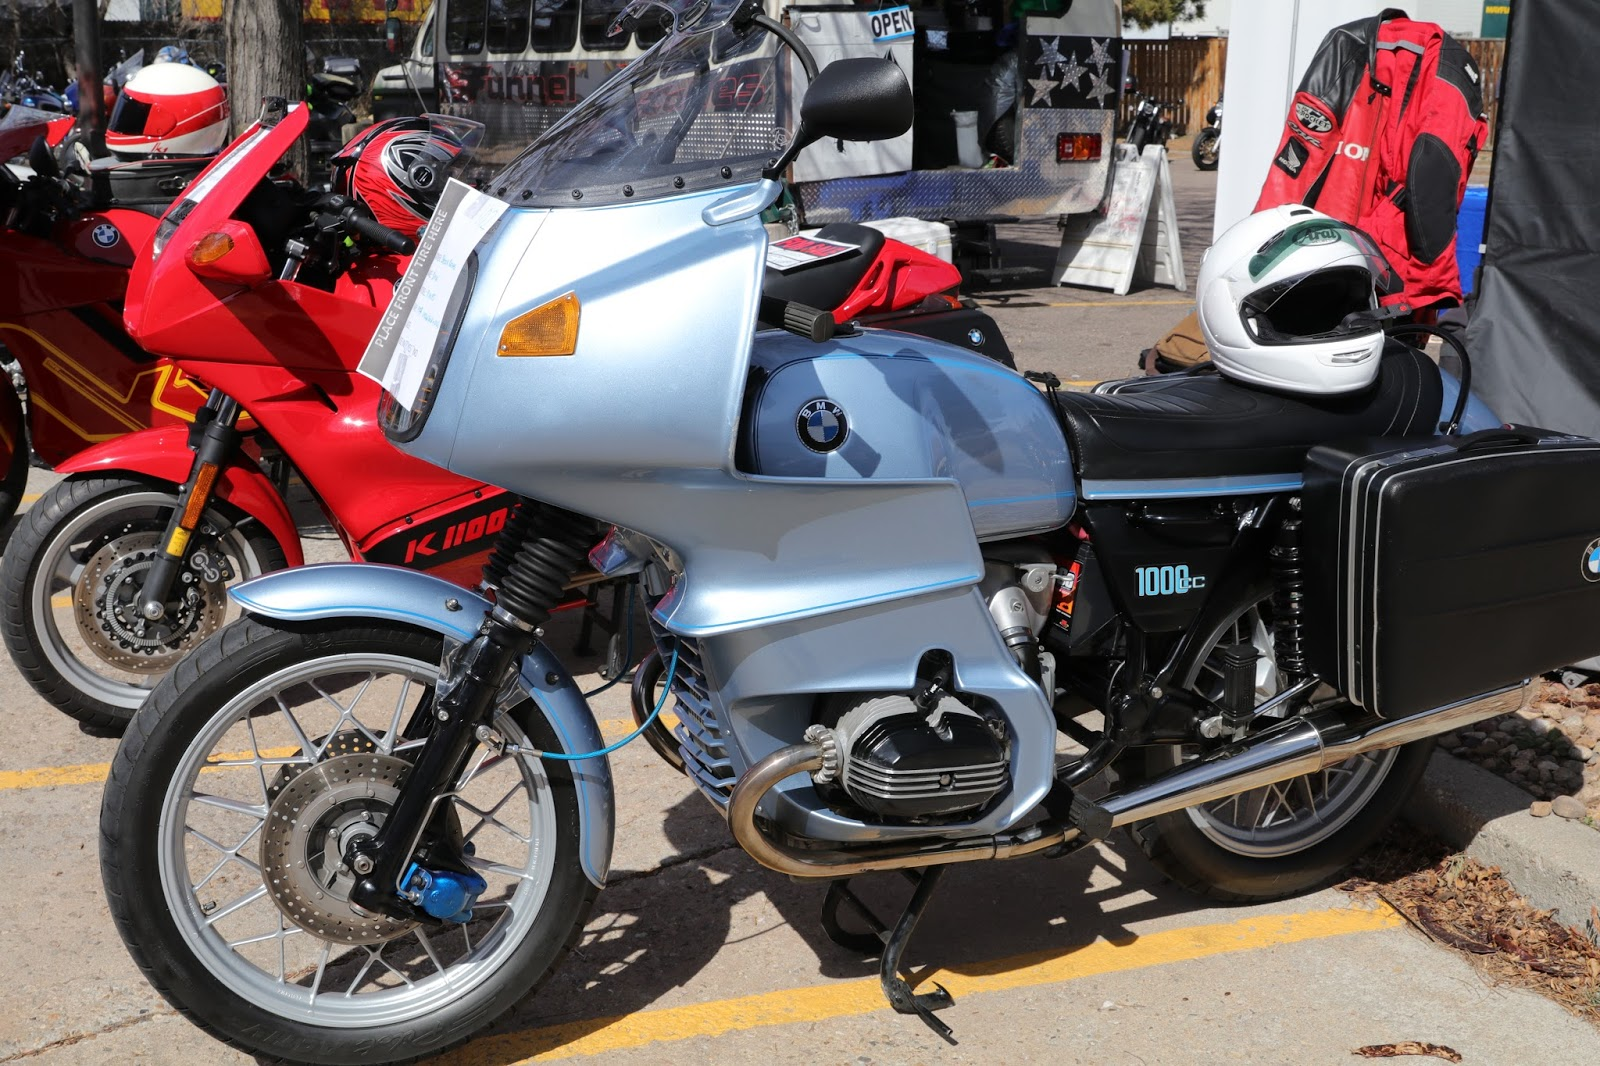 Oldmotodude 1977 Bmw R100rs On Display At The 2018 Classic Bike